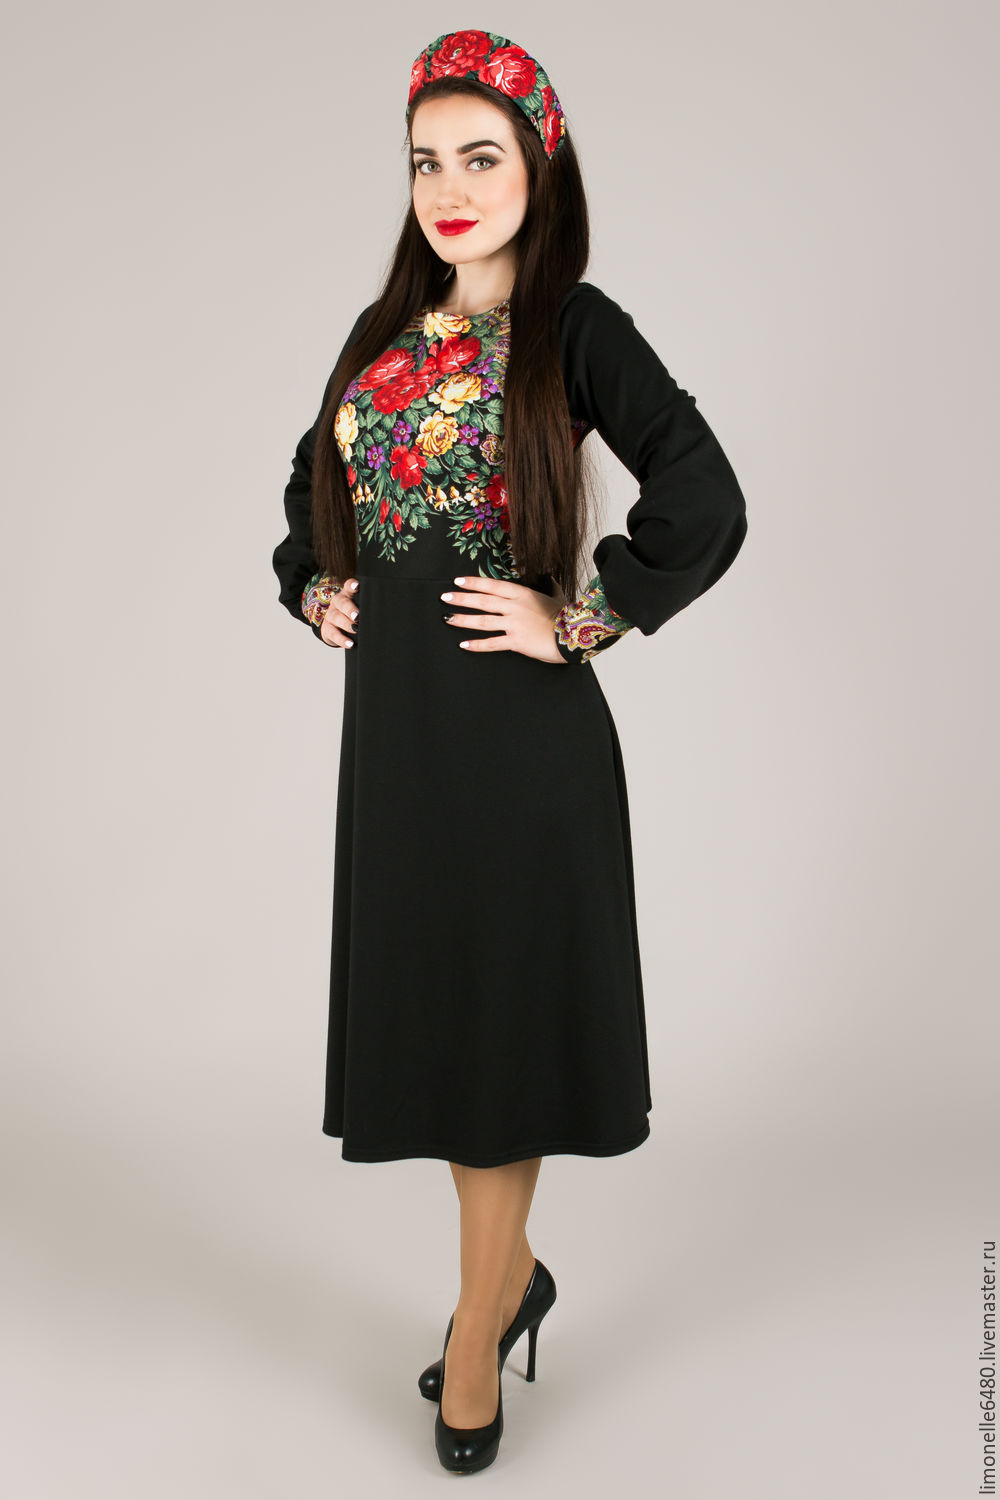 Dress with shawl black, Dresses, Rostov-on-Don,  Фото №1